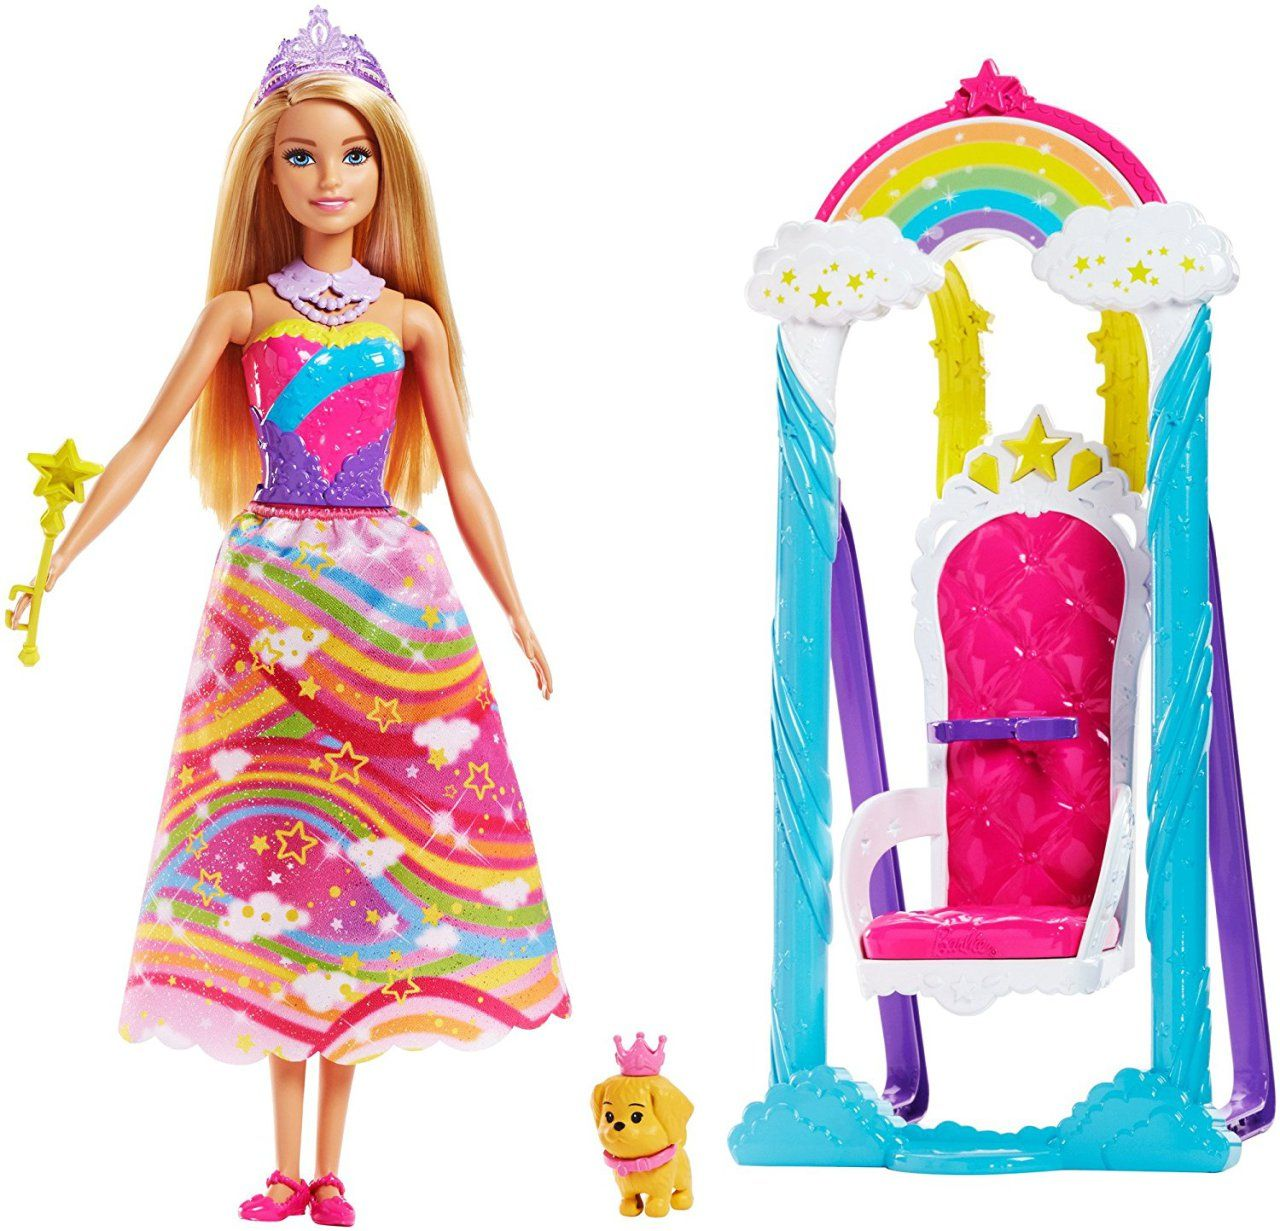 2018 News about the Barbie Dolls! (With images)   Doll